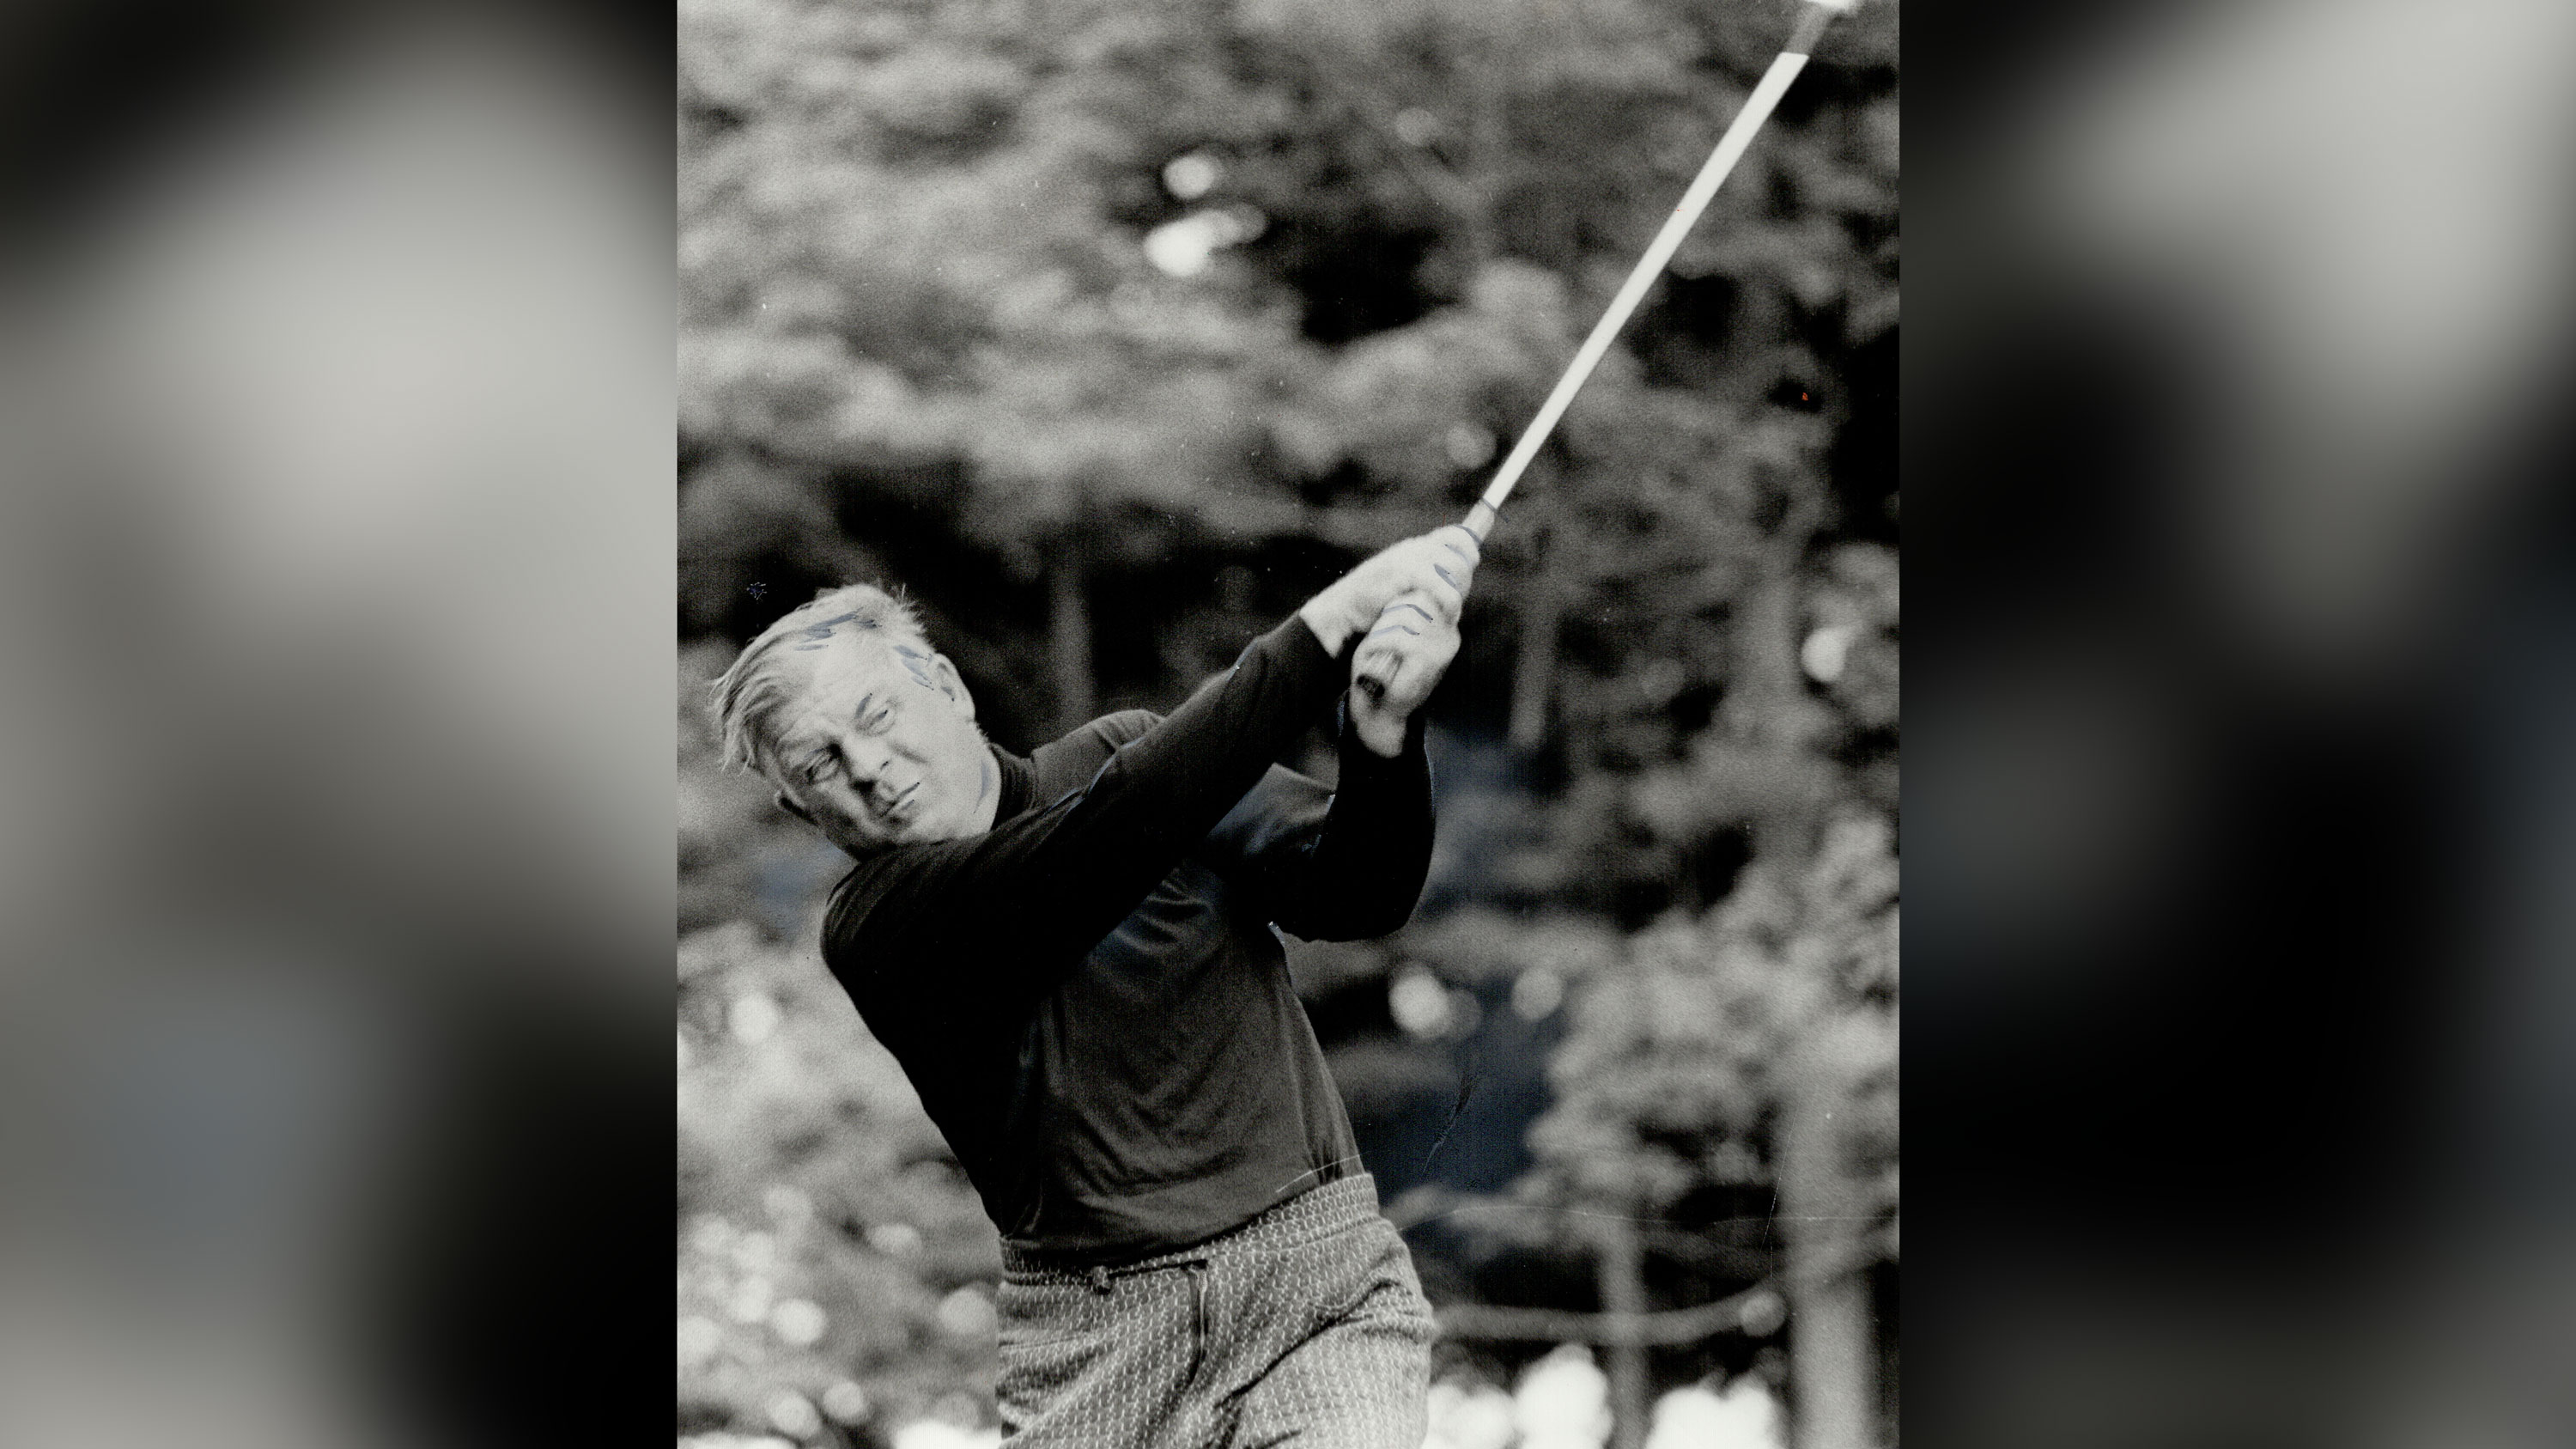 Moe Norman: The 'Rain Man of golf' who amazed even the greats of the sport